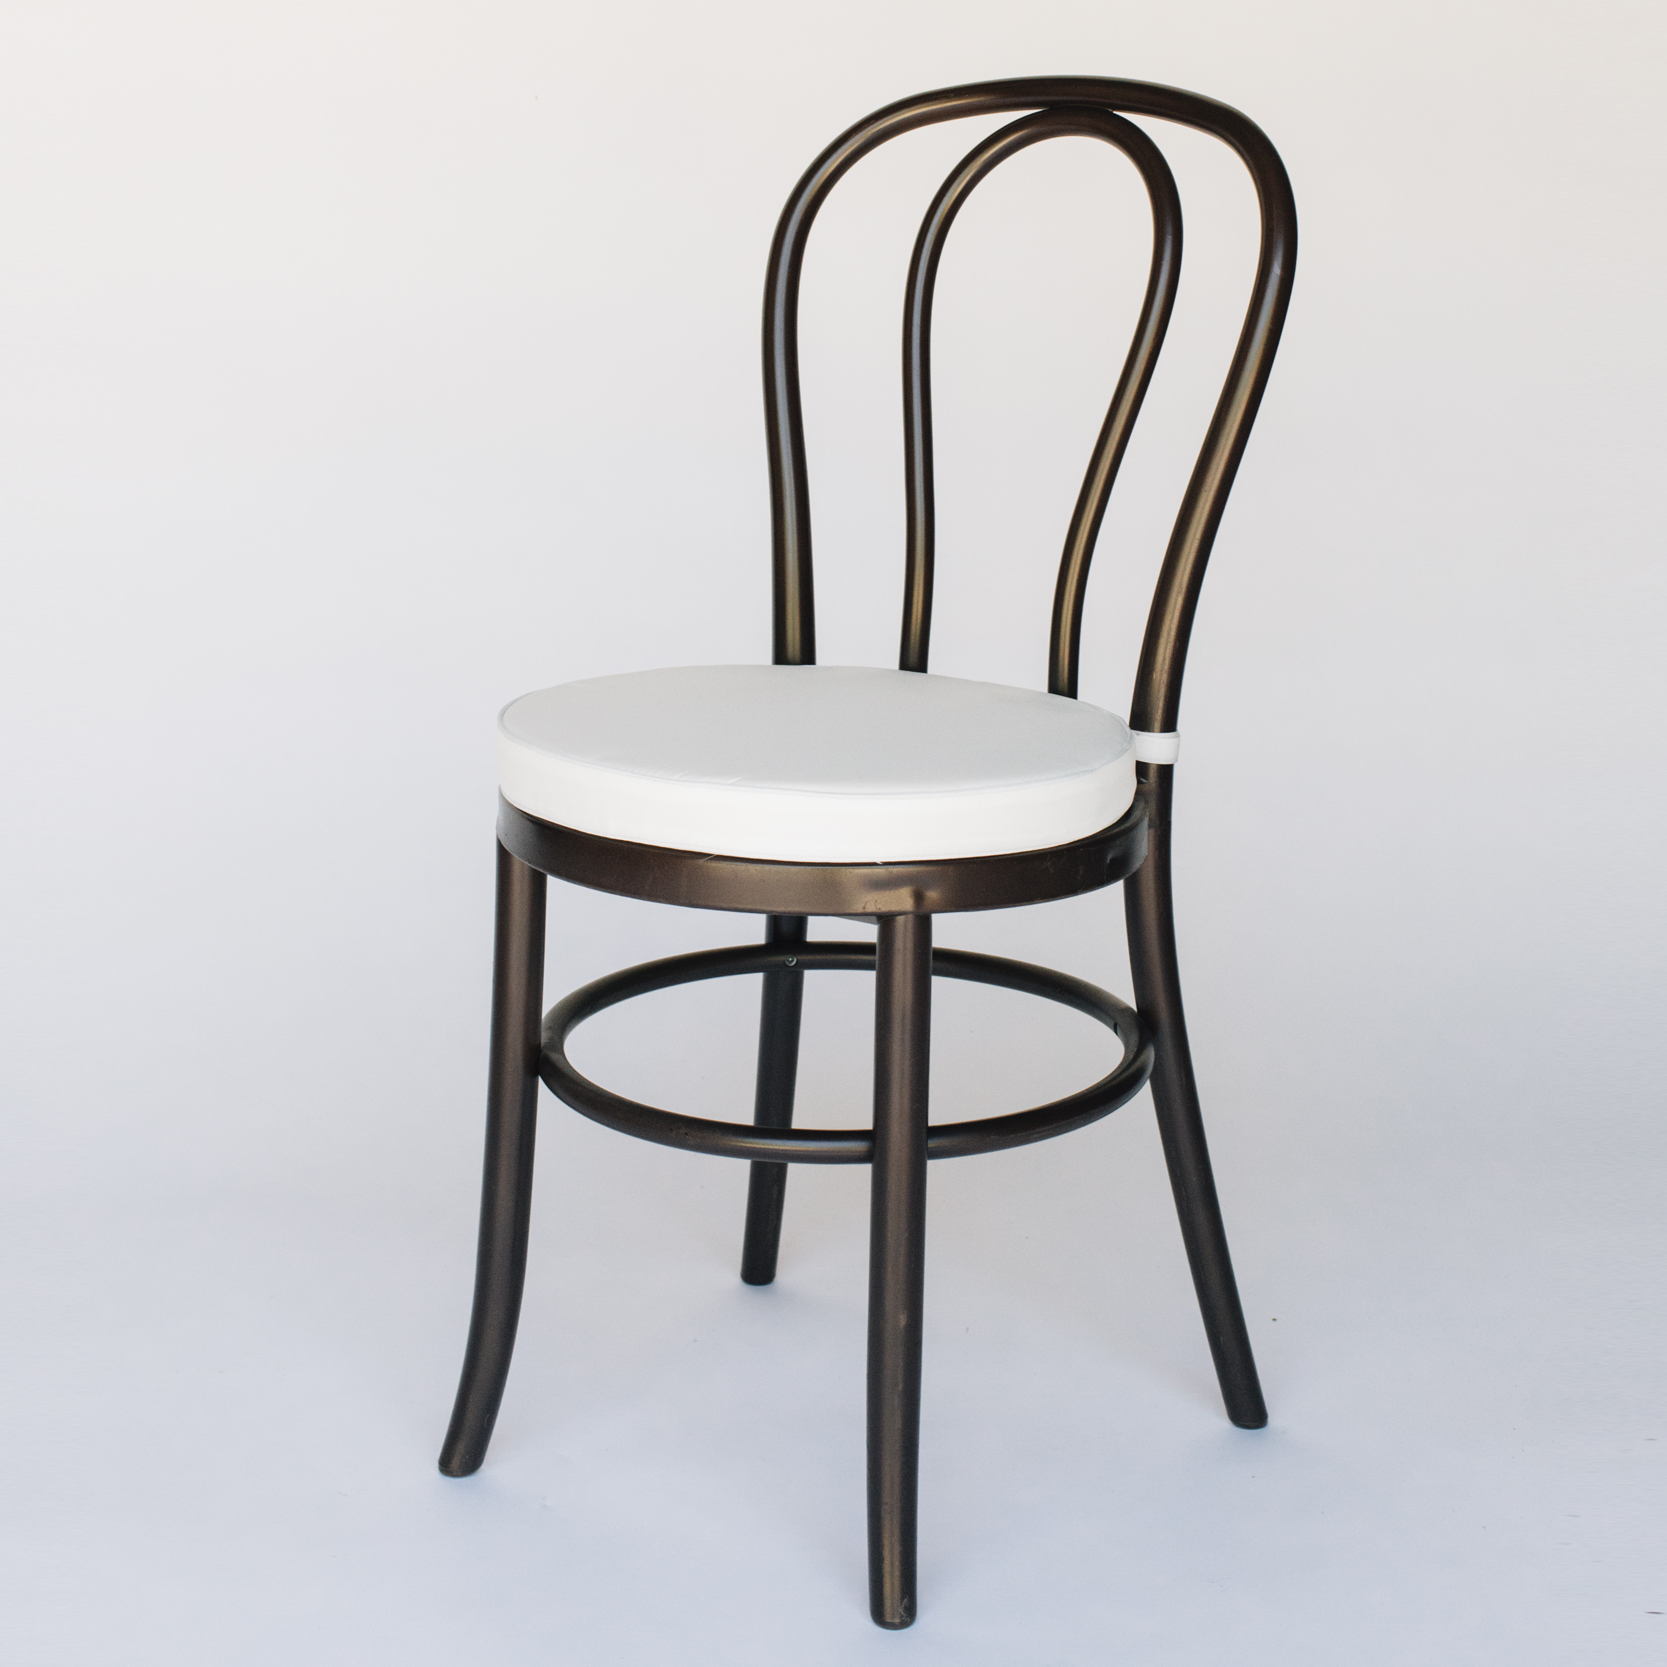 CHAIR_METAL_1.jpg